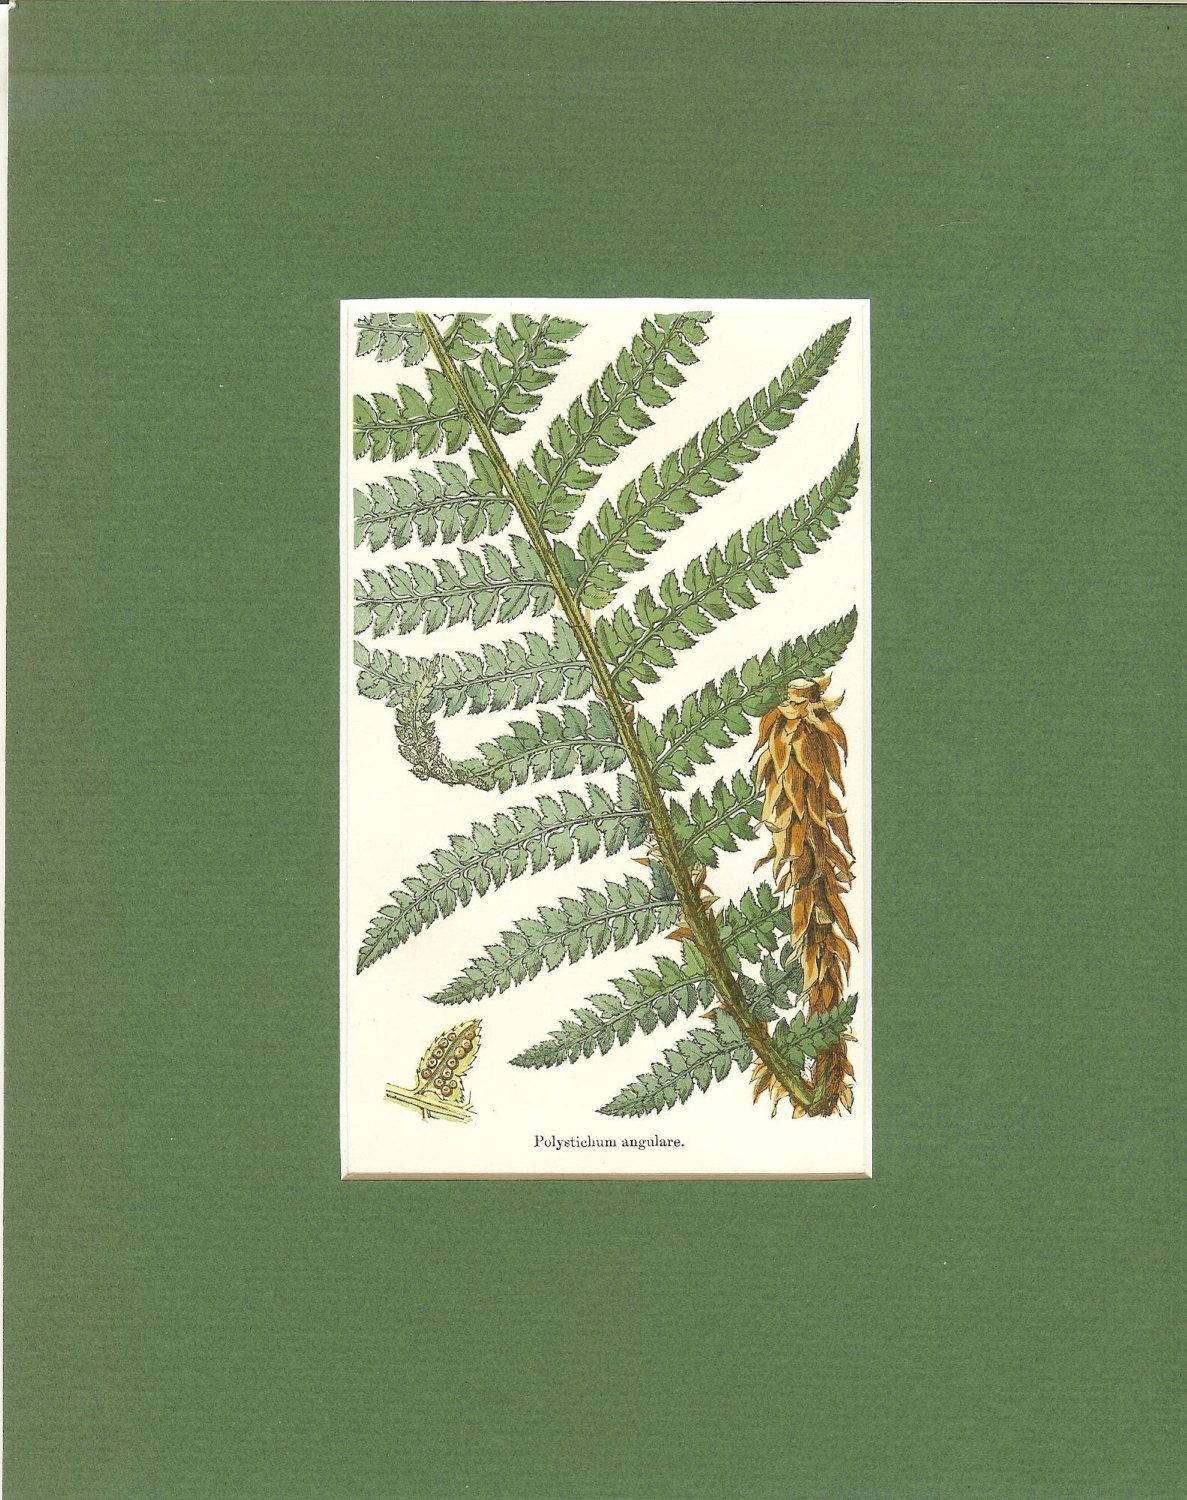 Antique Victorian 1890s Matted Fern Print- Polystichum Angulare-Soft Shield Fern- Vintage Book Plate Book Illustration Nature Print by printsandpastimes on Etsy